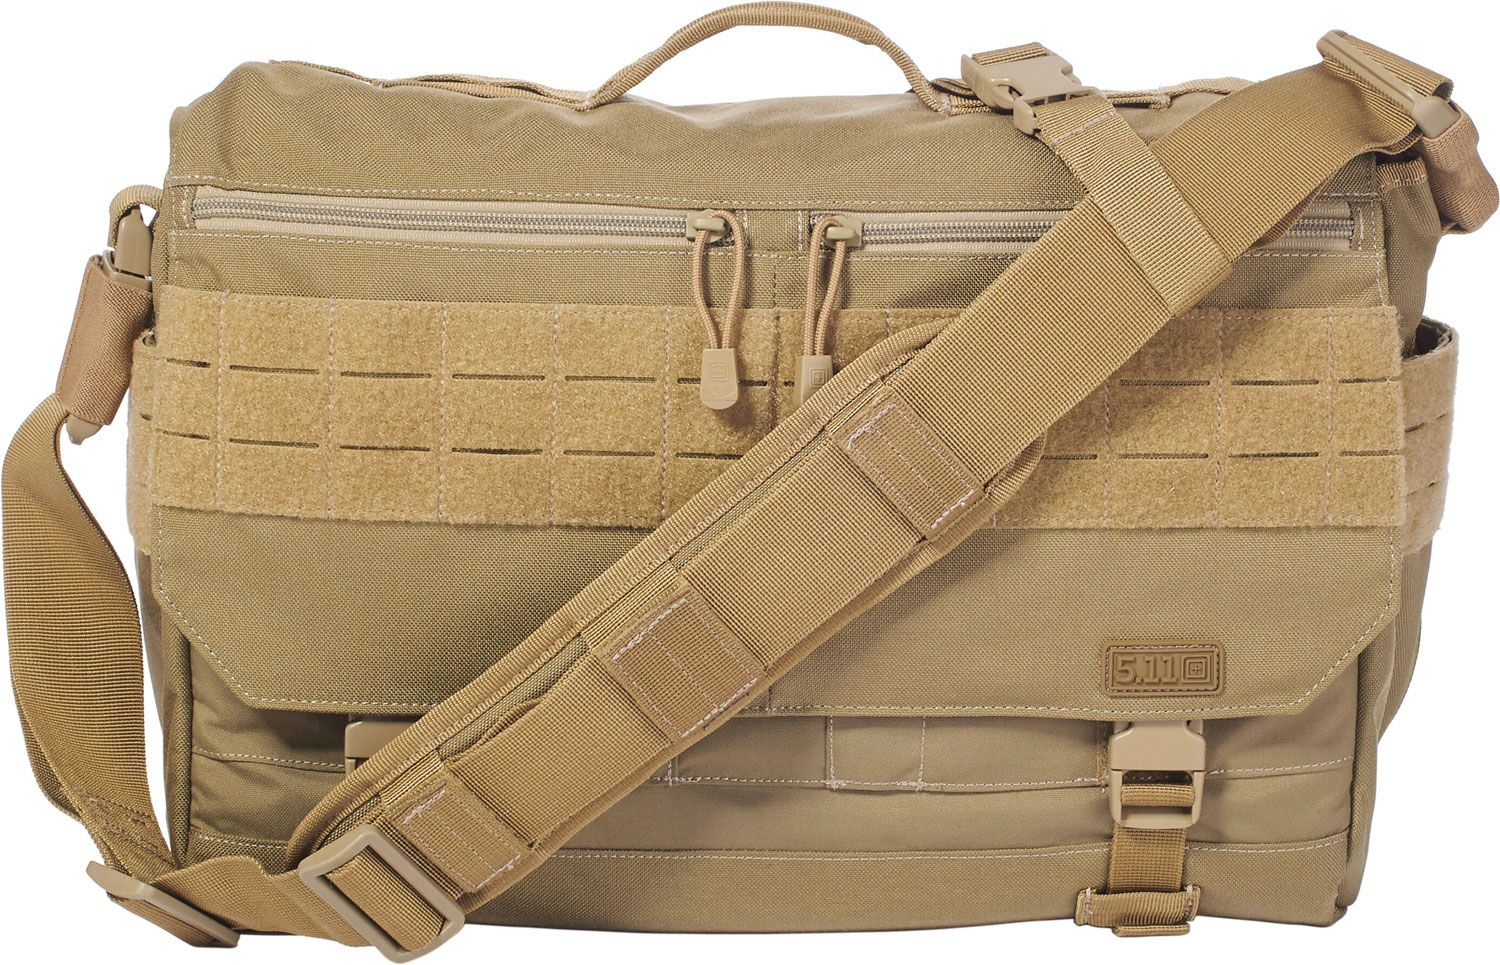 5.11 Tactical Rush Delivery Lima Bag, Sandstone (56177-328)